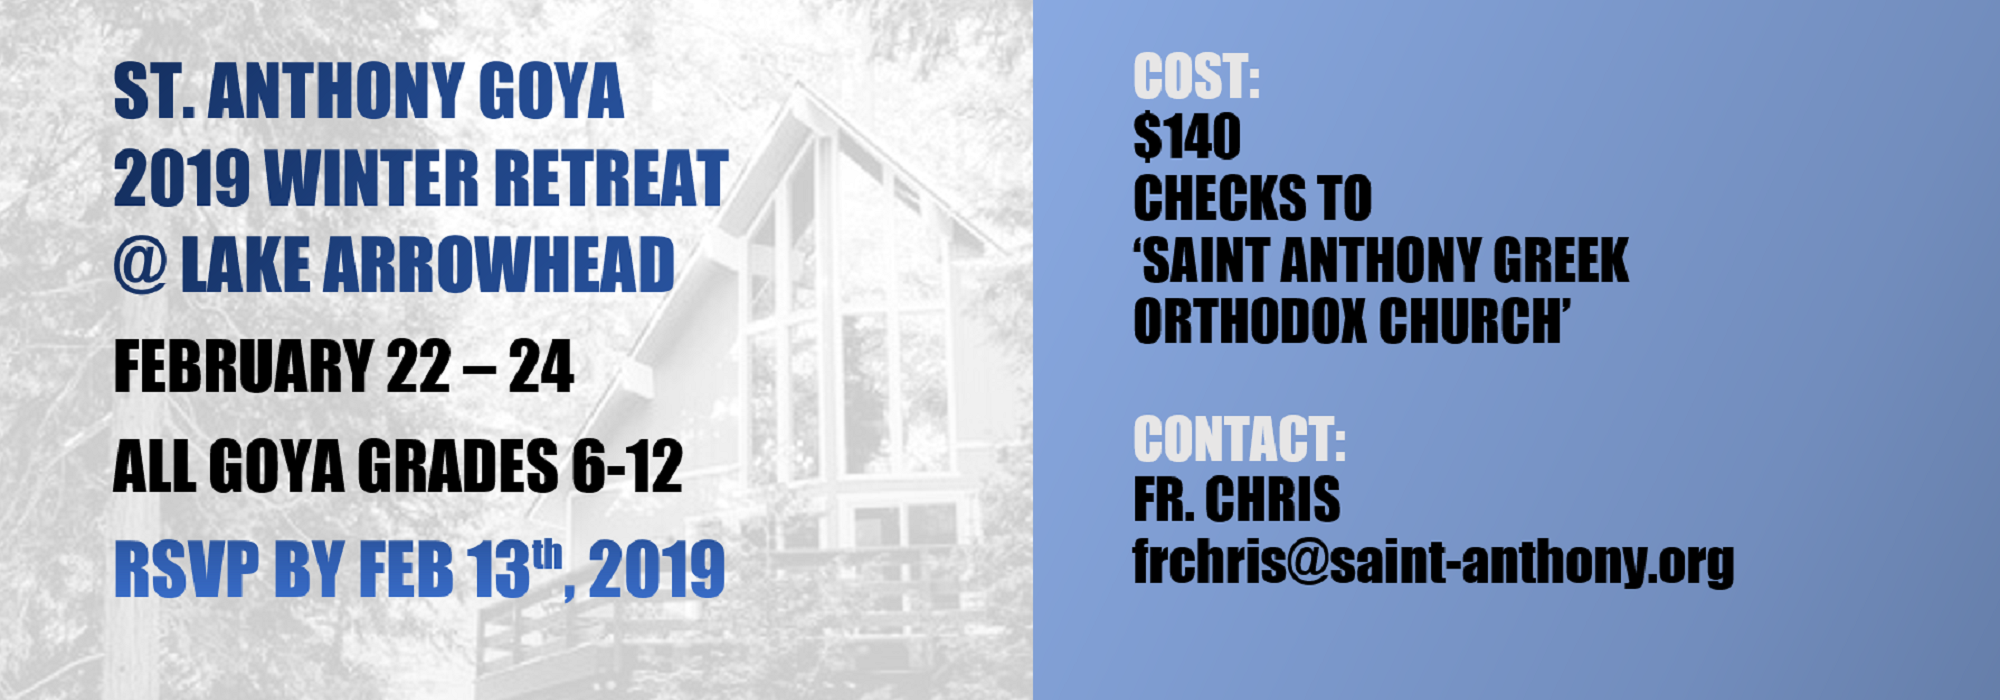 St. Anthony GOYA Winter Retreat